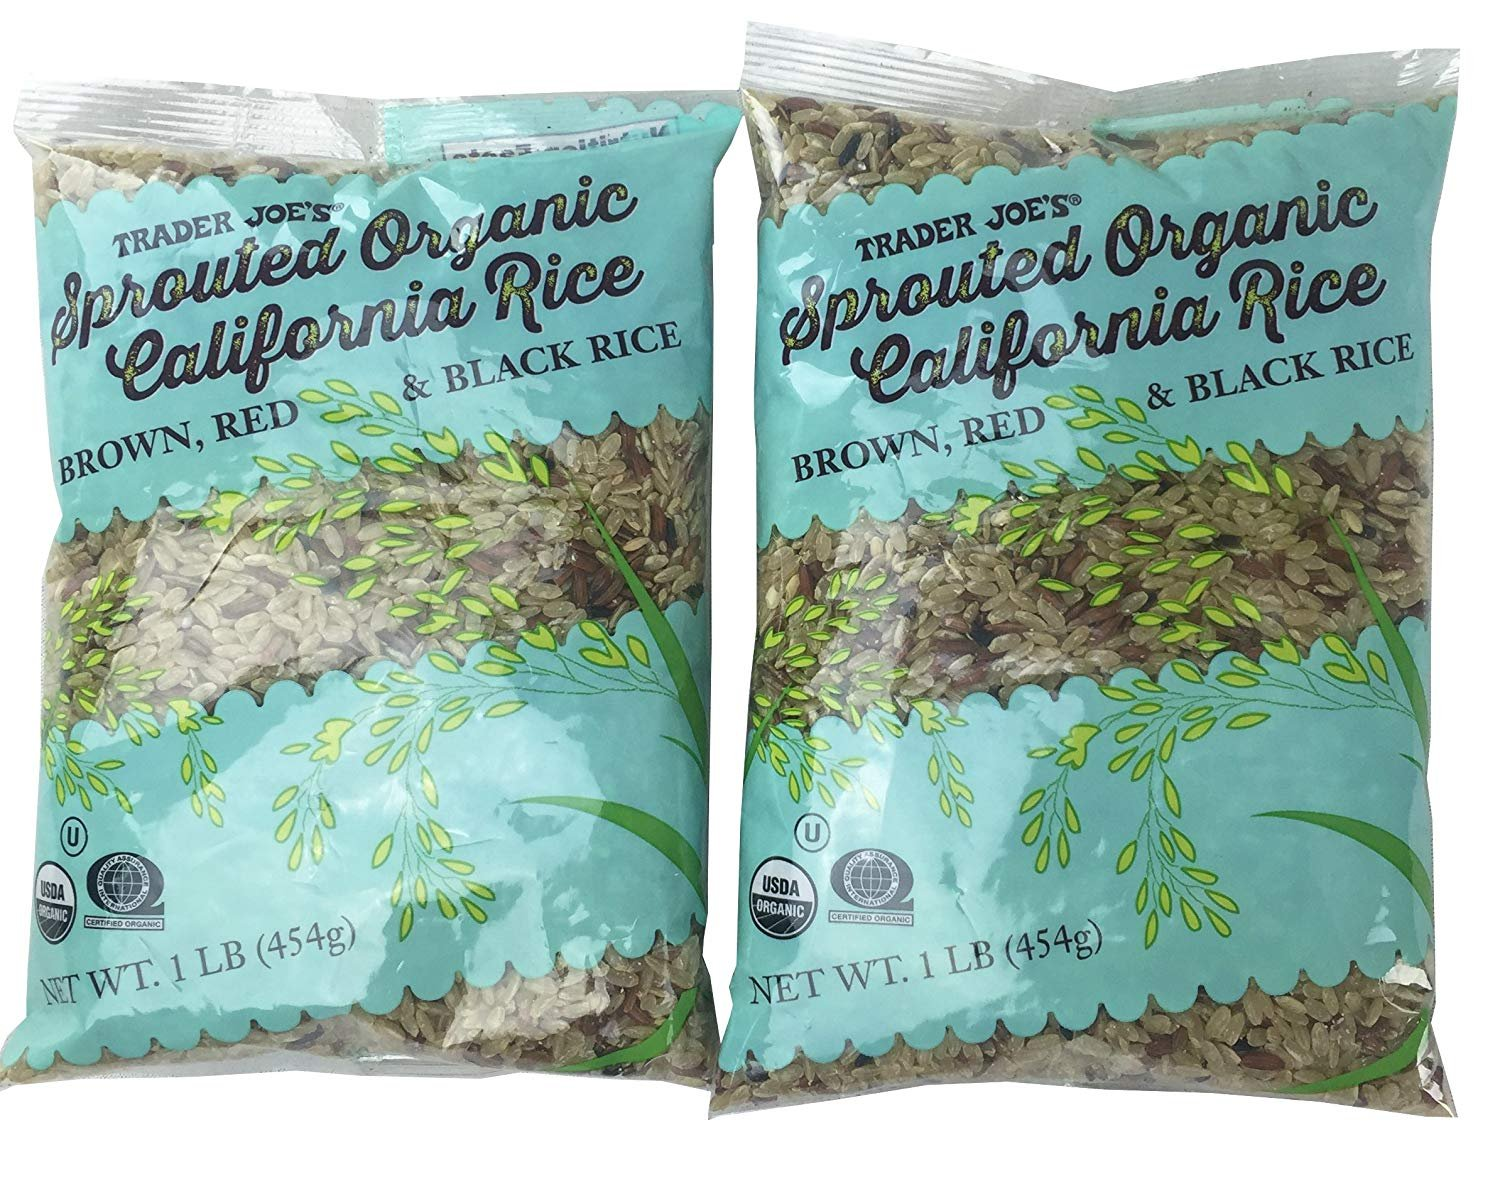 Amazon.com : Trader Joes Sprouted Organic California Rice 2 Pack ...